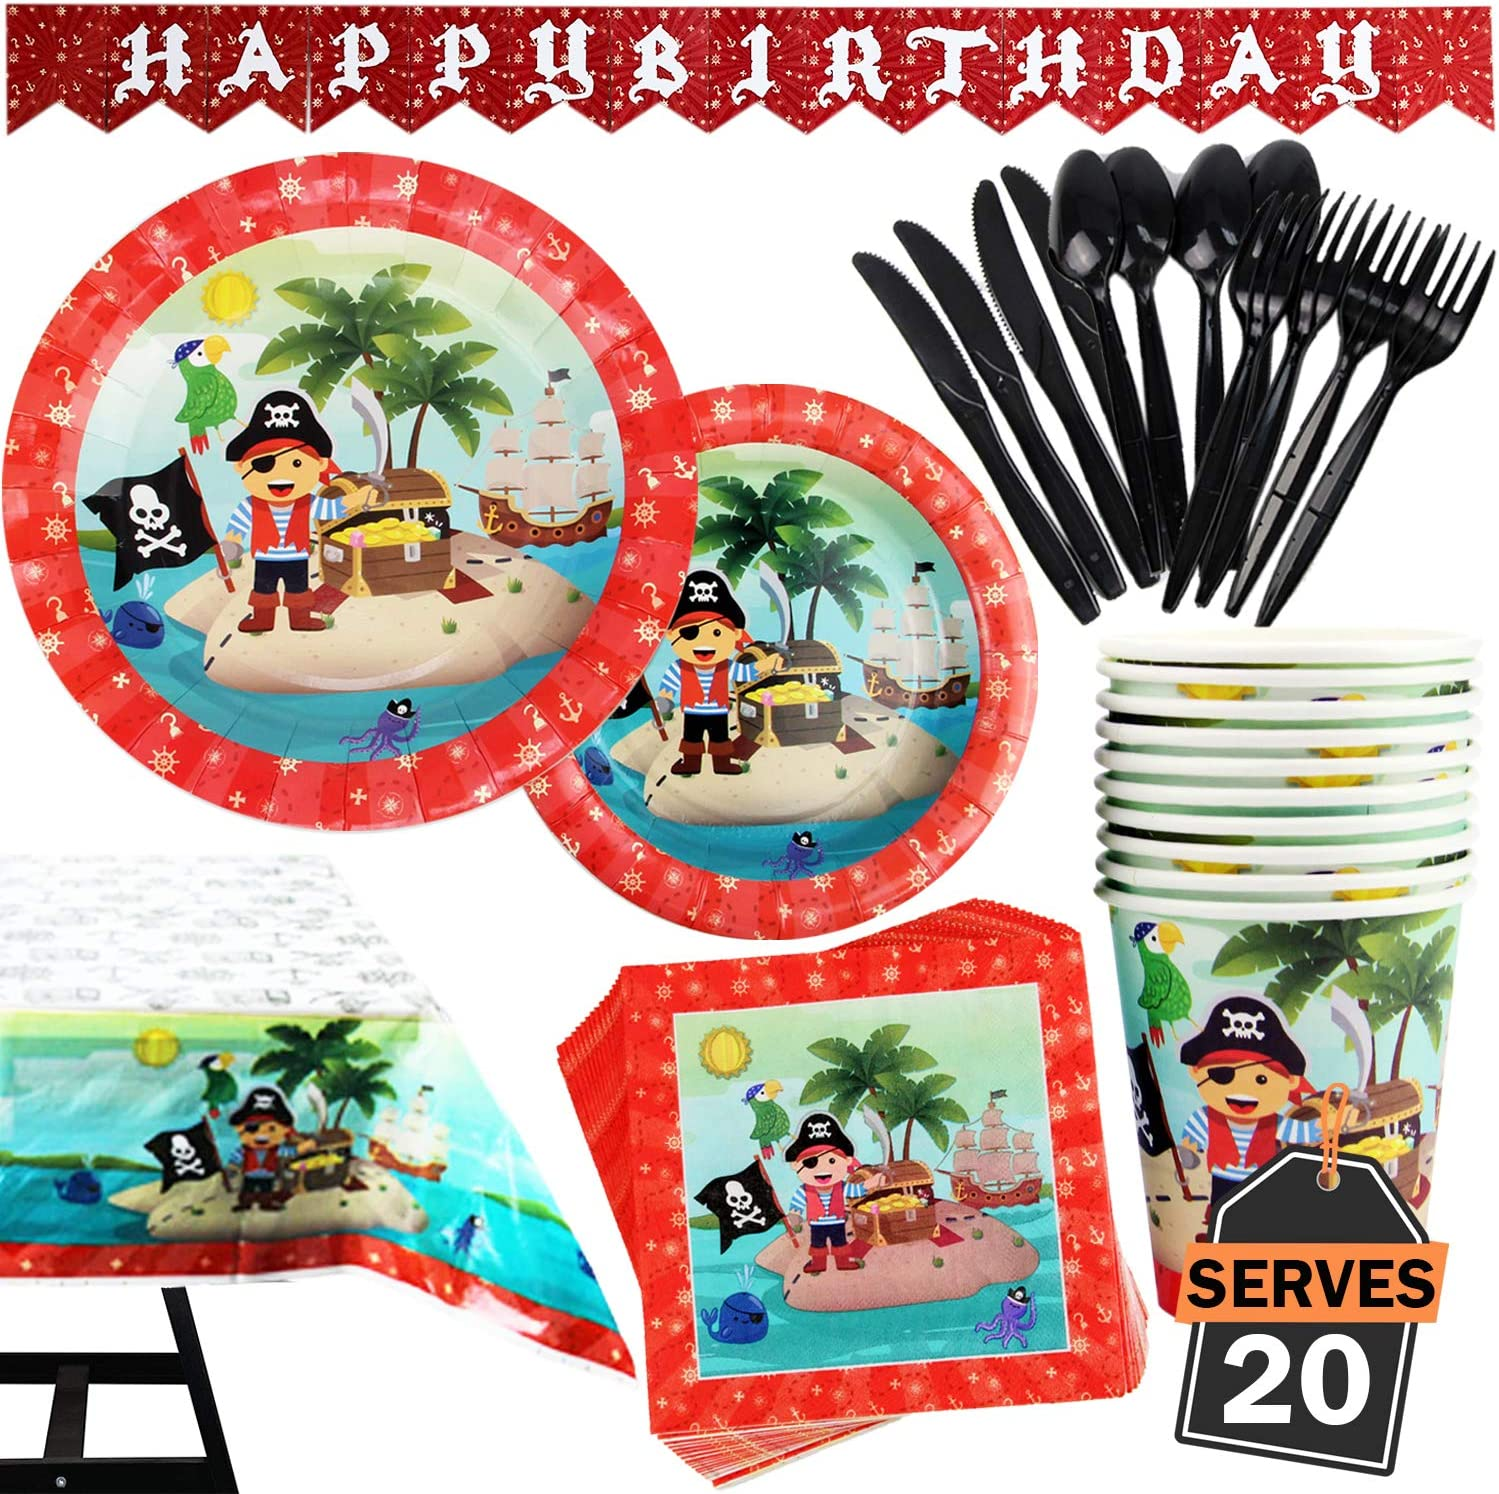 Cups Tablecloth Forks etc Disposable Dinnerware Spoon 162 Pcs Pirate Party Supplies Tableware Set Pirate Decorations Banner Pirate Birthday Party Decor Paper Plates Pirate Themed Party Napkins